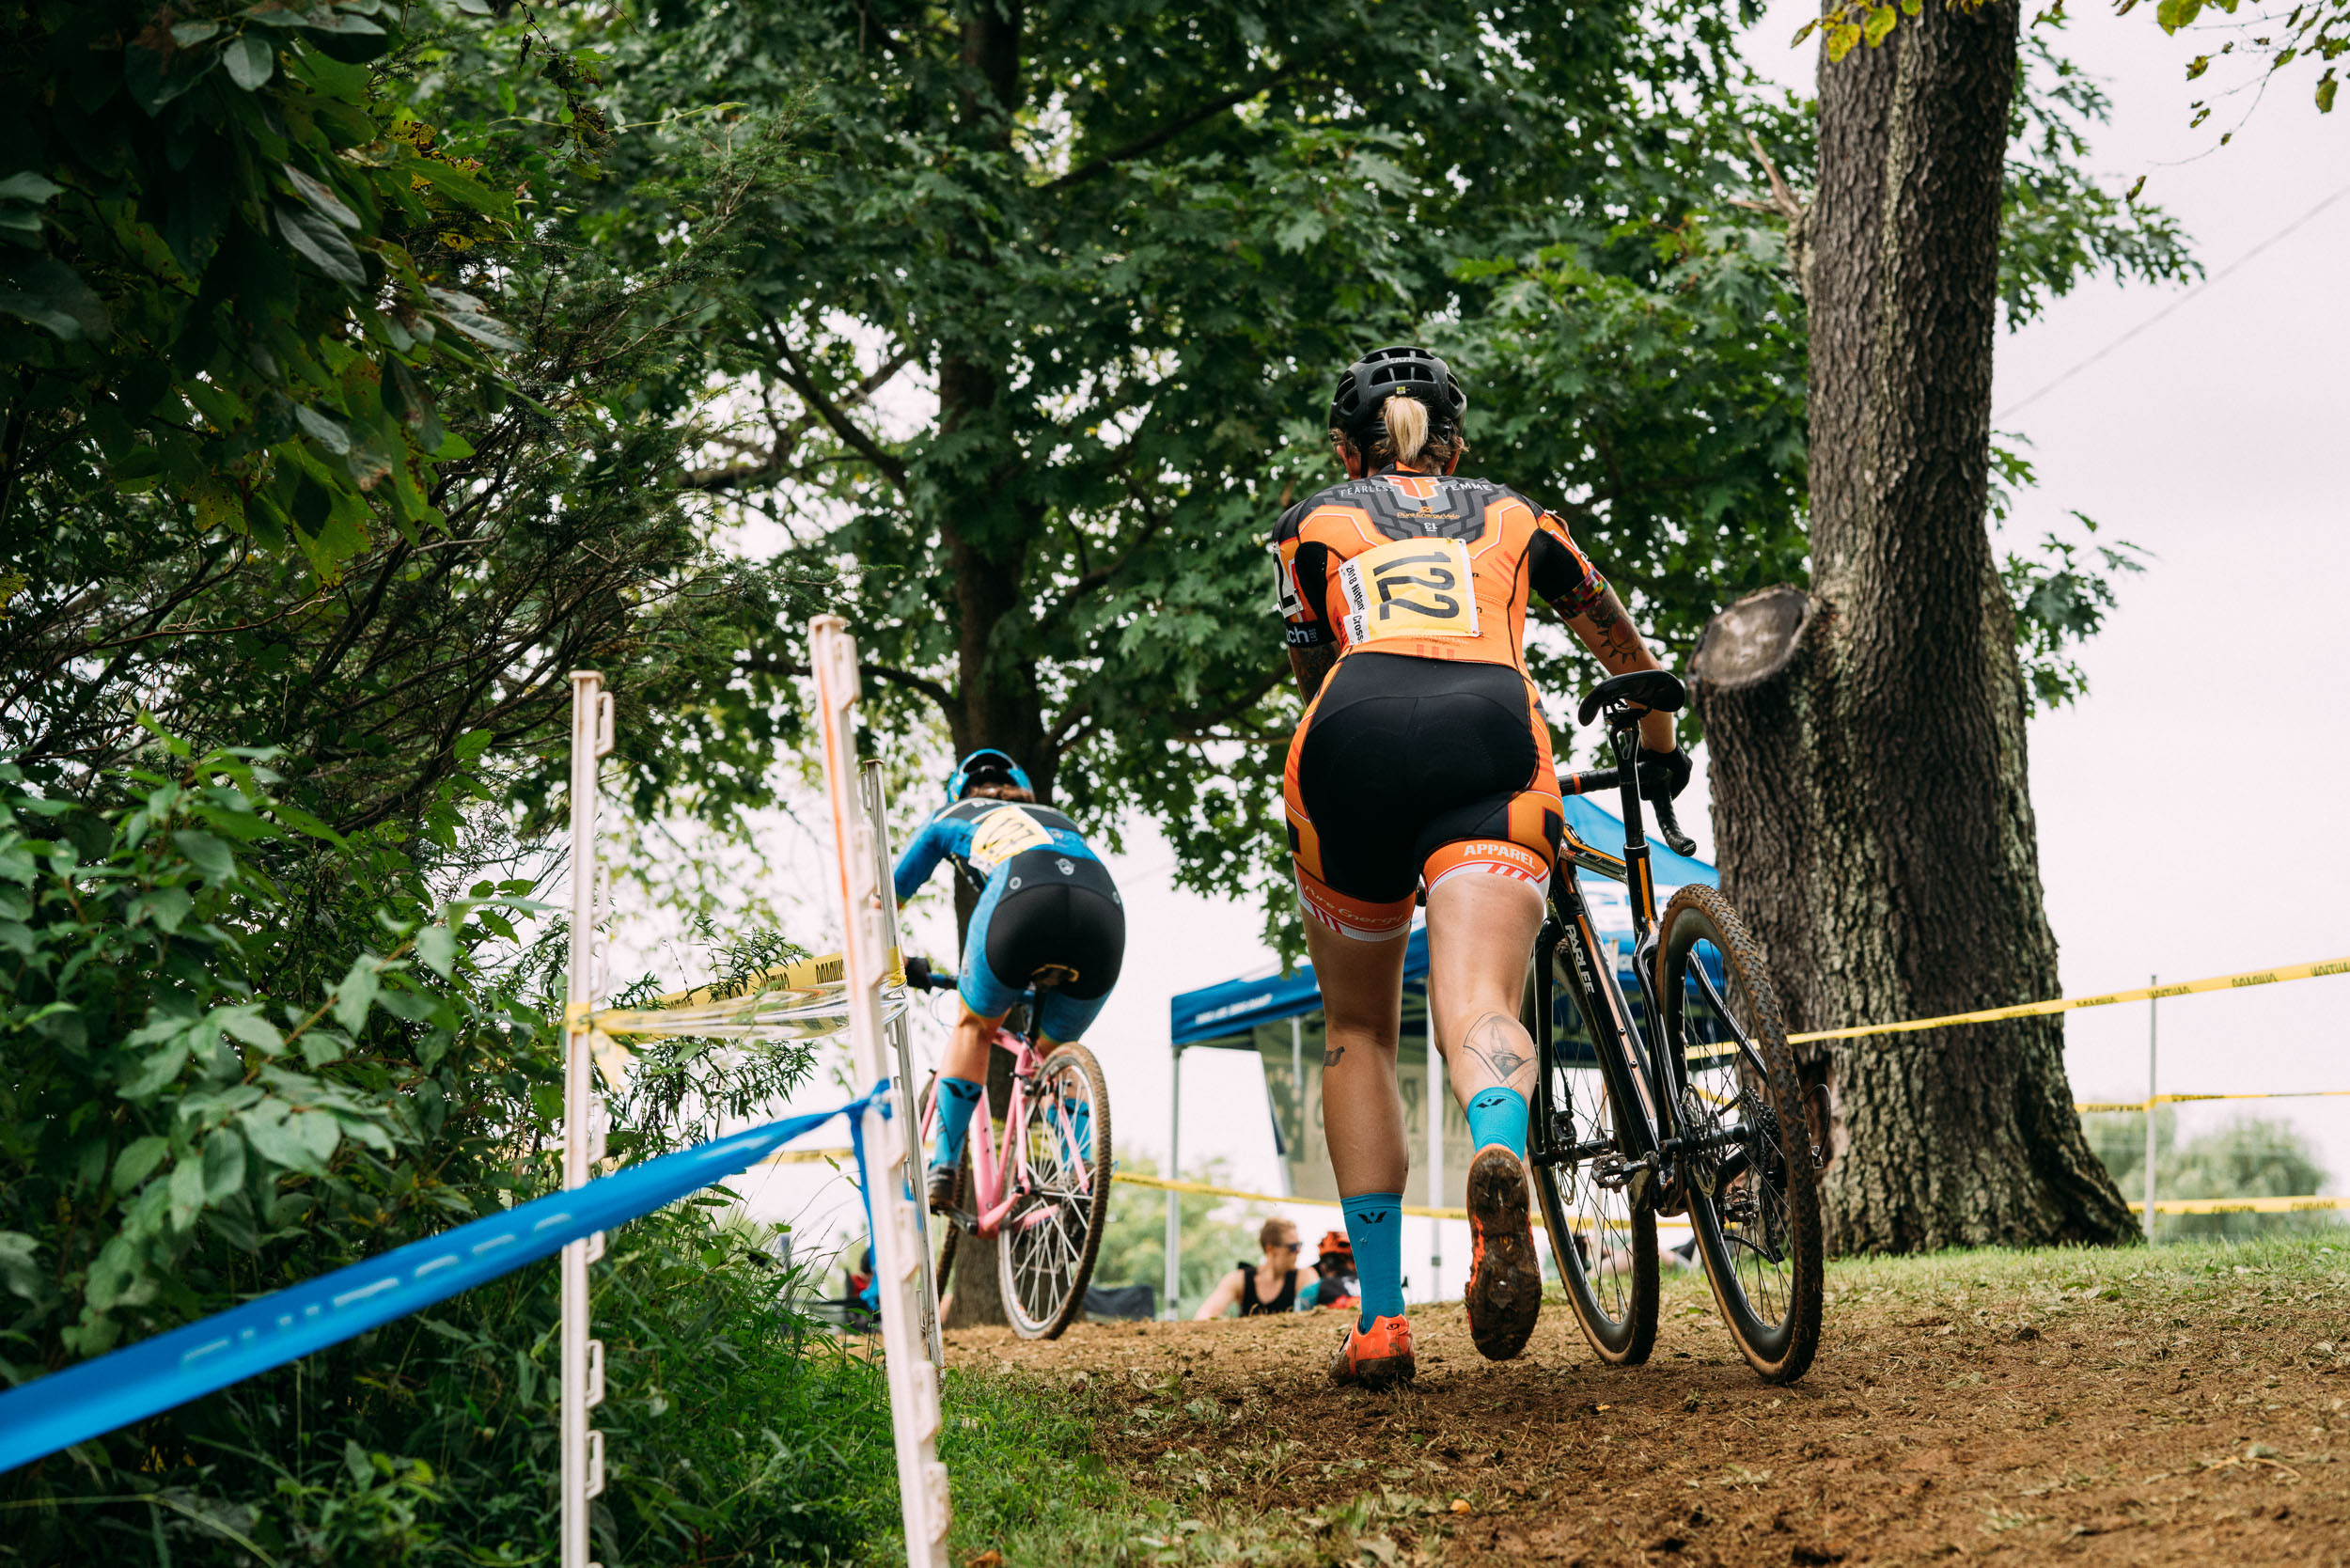 photo-rhetoric-to-be-determined-nittany-cyclocross-1105.jpg